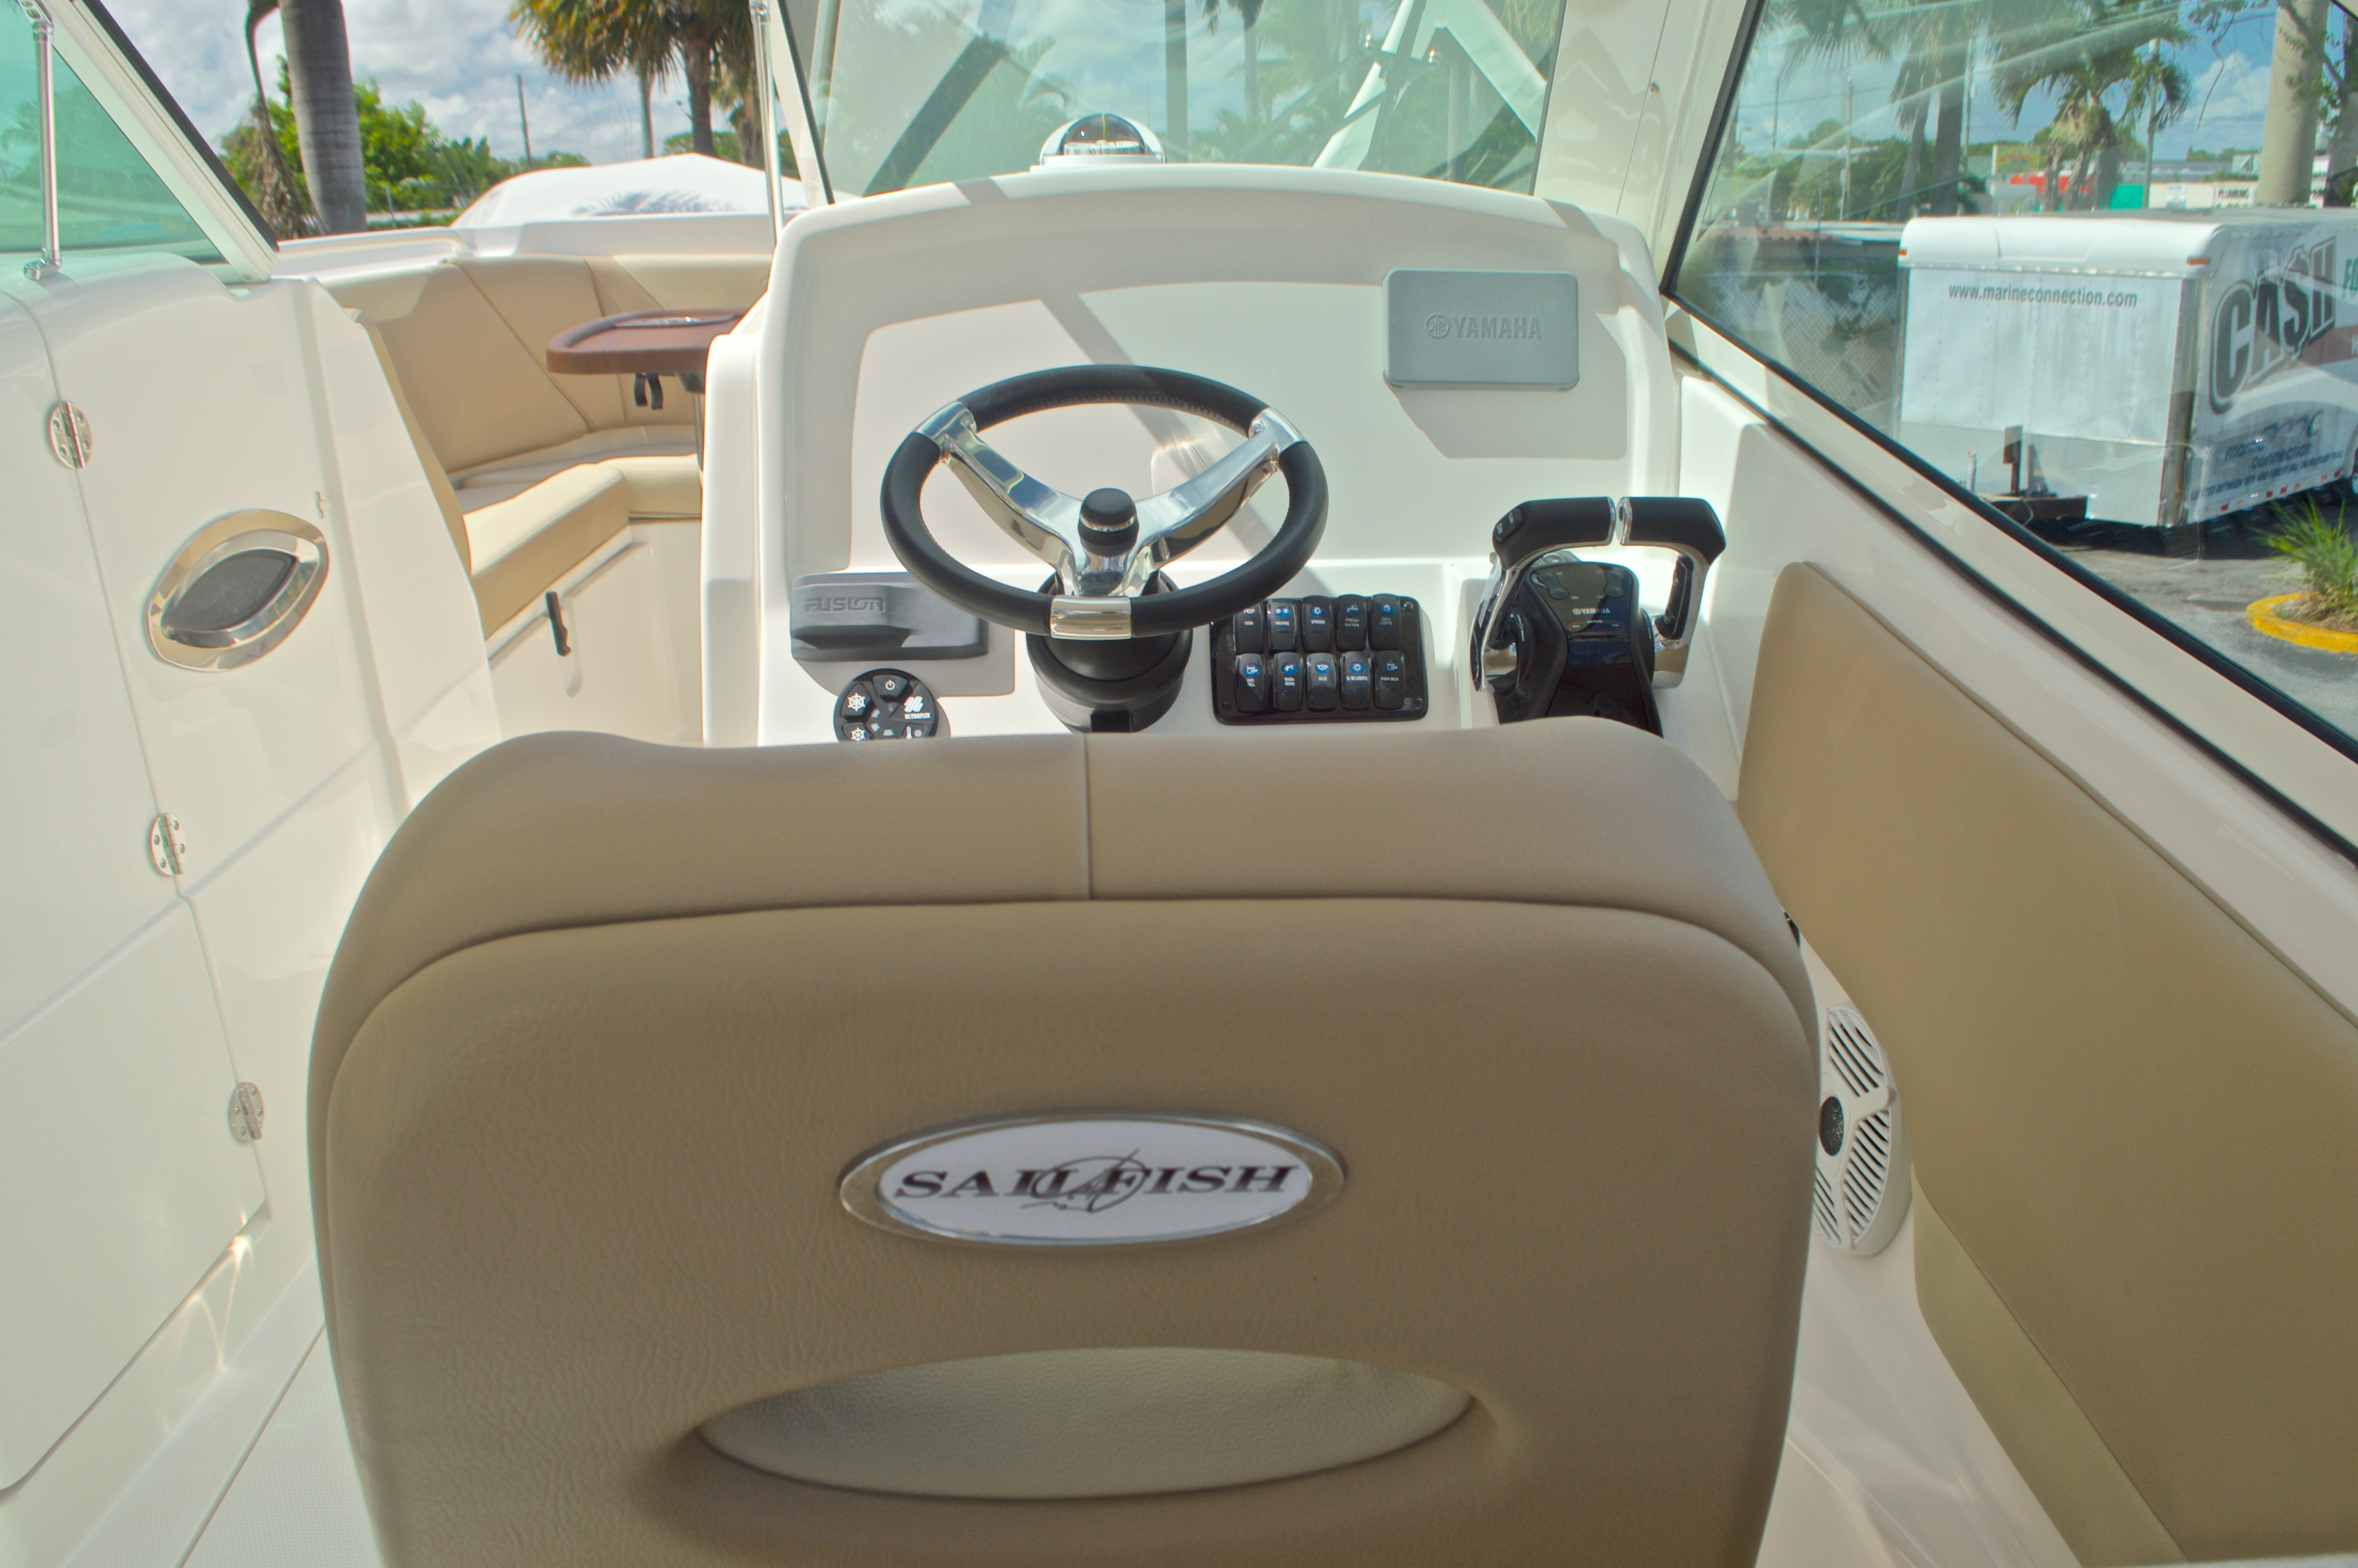 Thumbnail 44 for New 2017 Sailfish 275 Dual Console boat for sale in West Palm Beach, FL